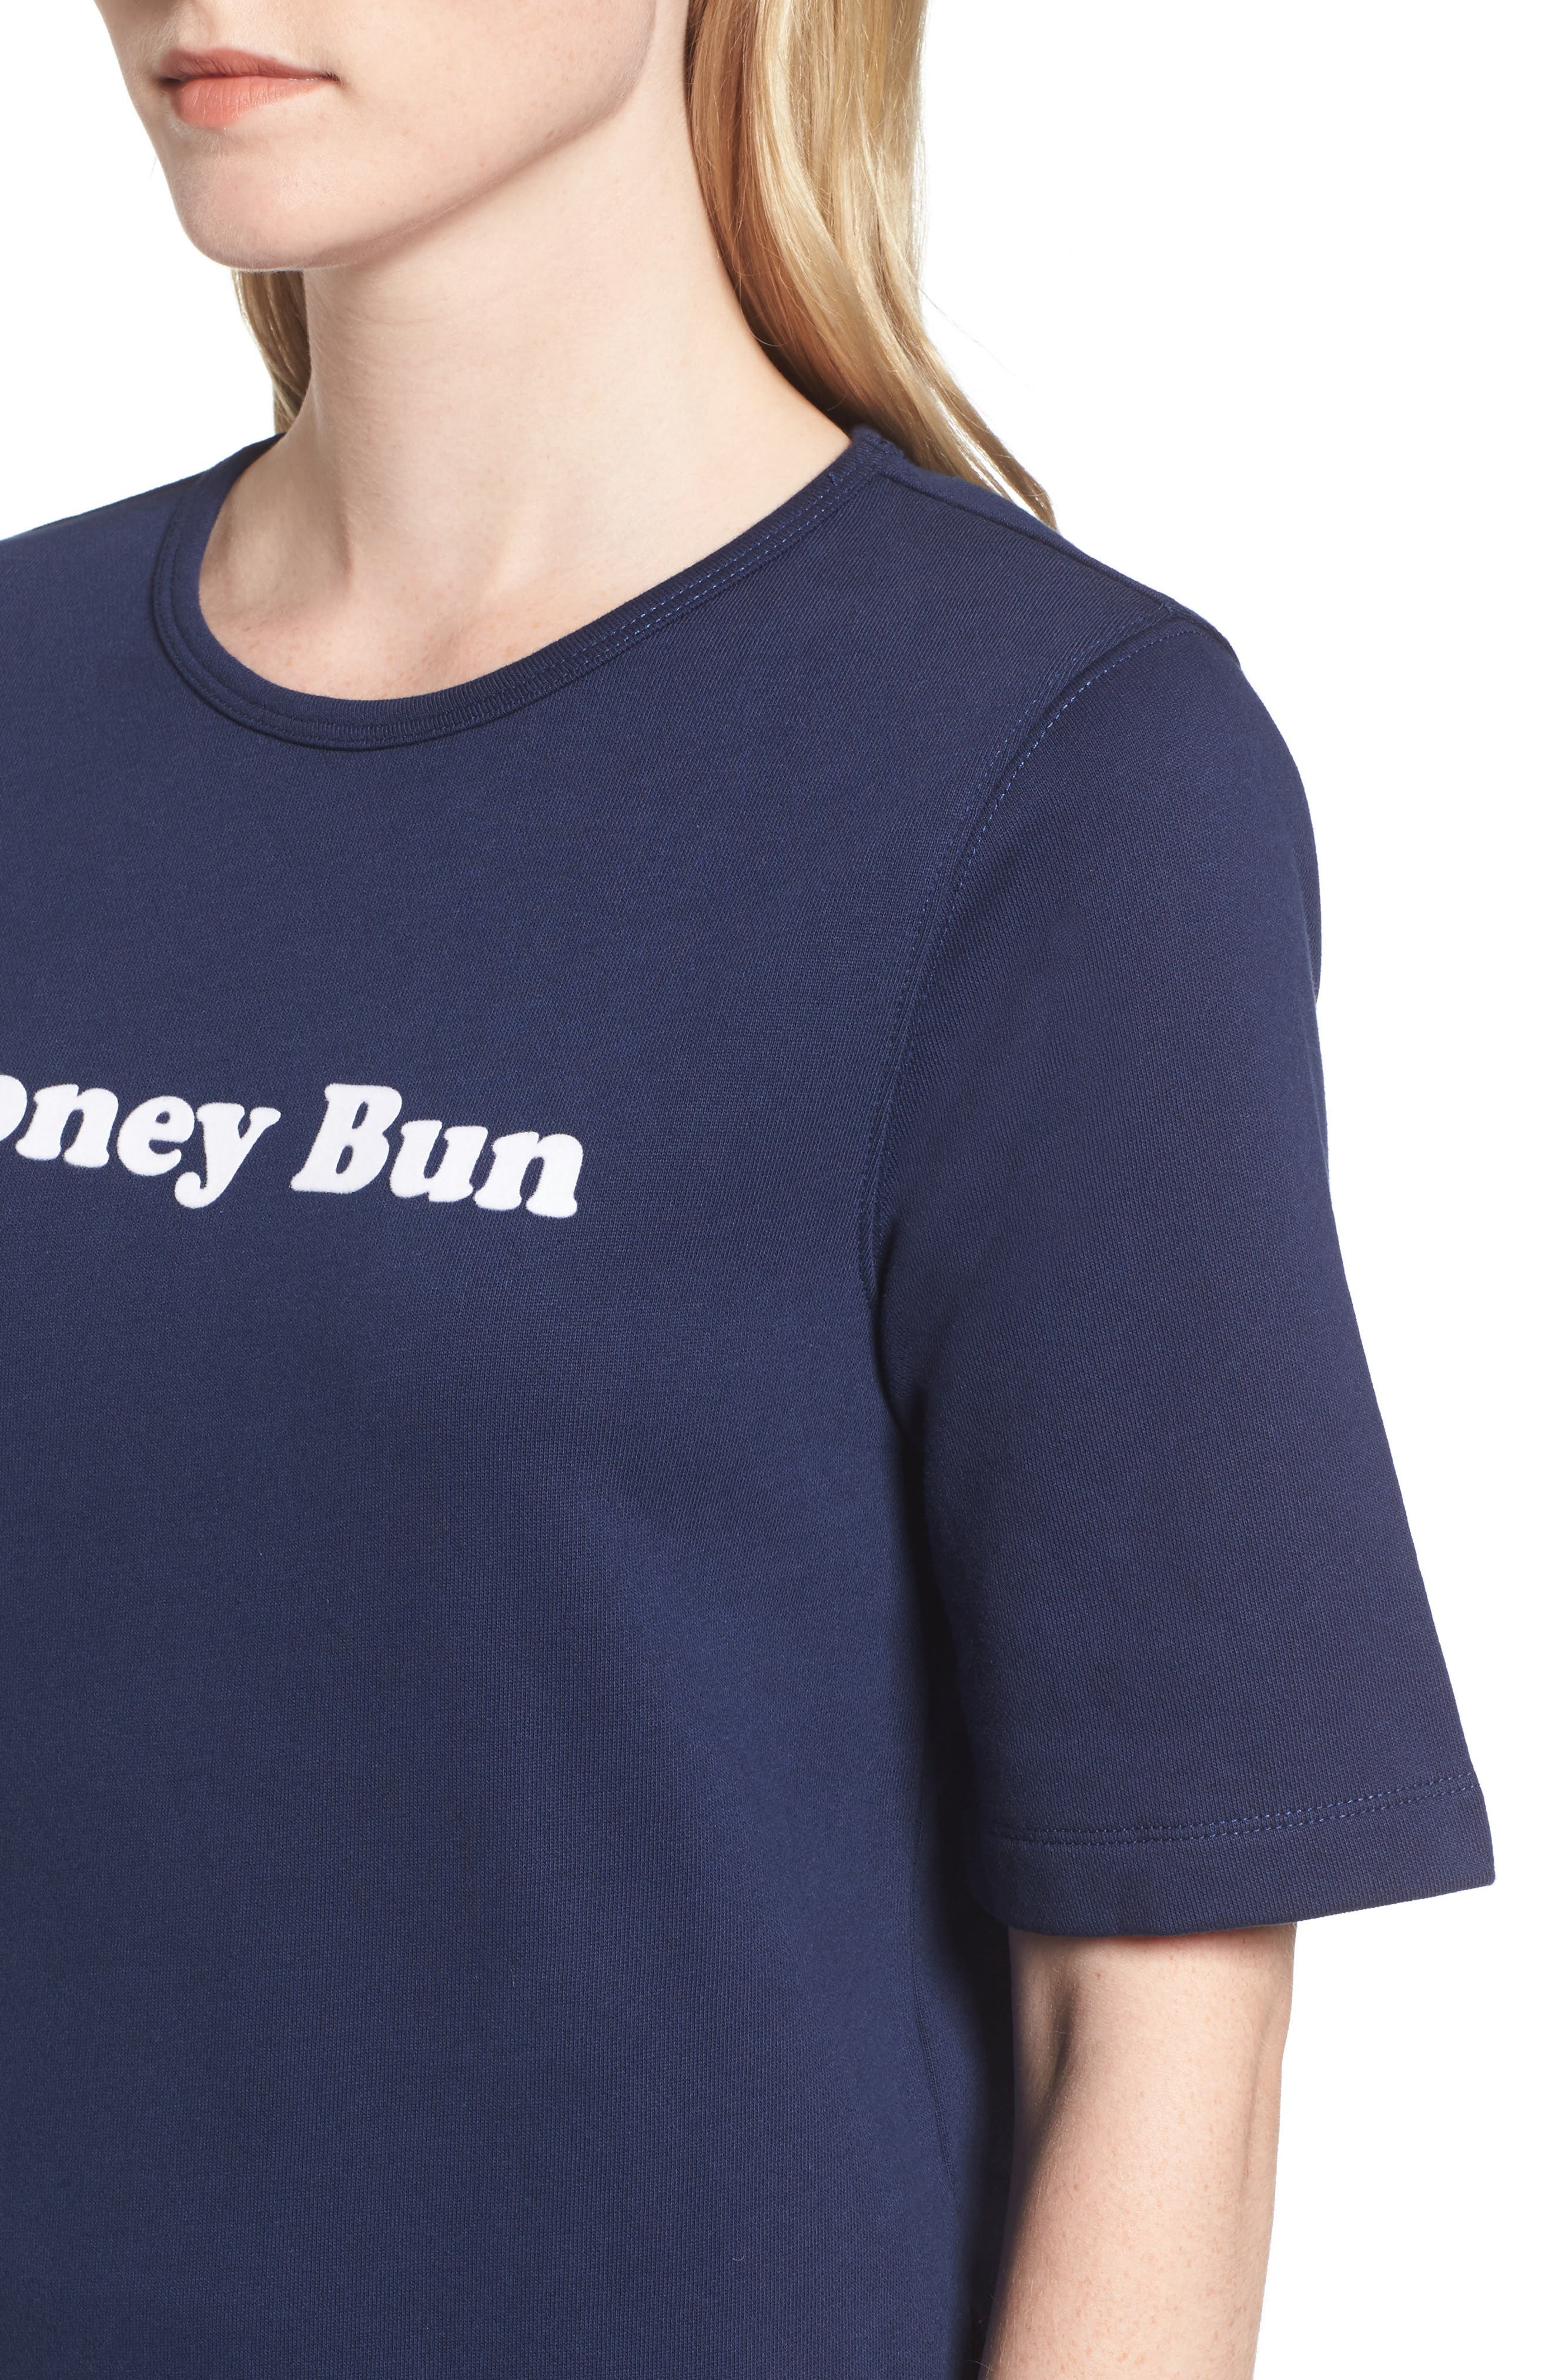 Honey Bun Sweatshirt,                             Alternate thumbnail 4, color,                             432